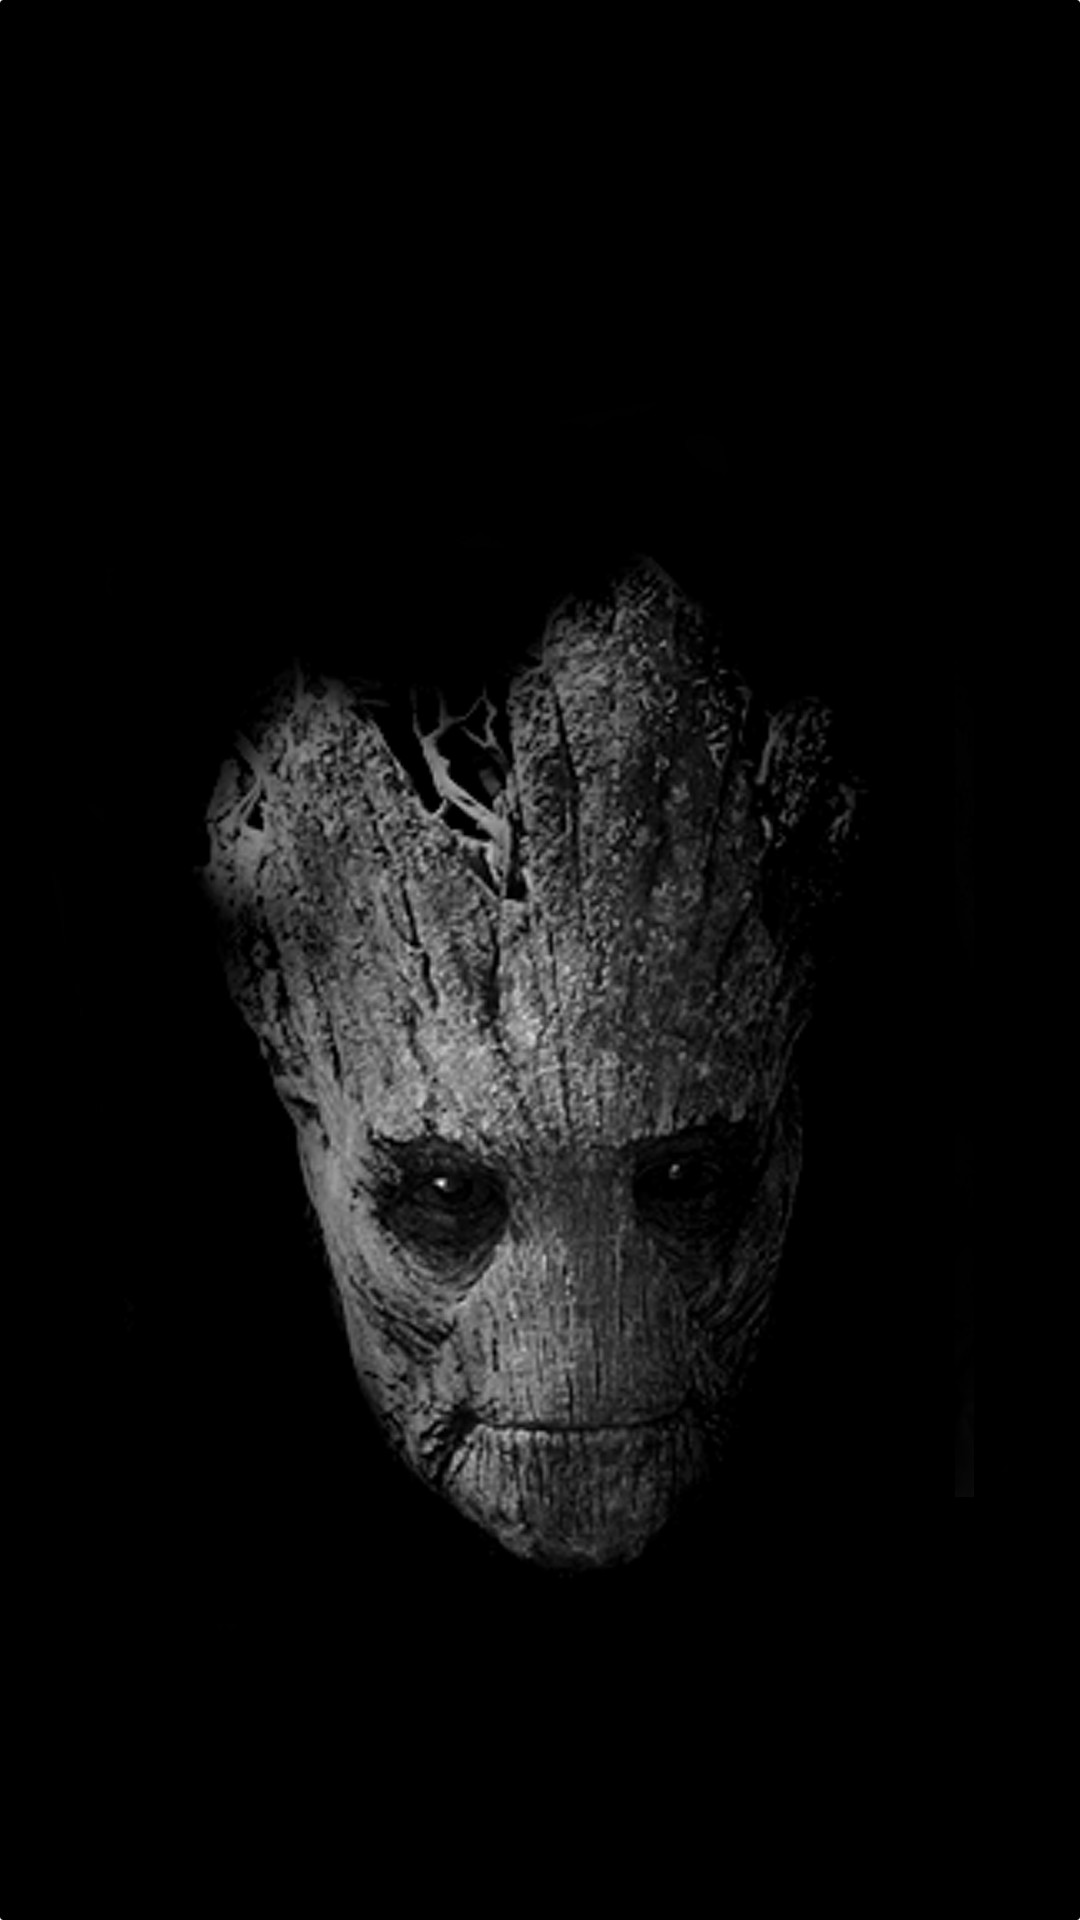 1080x1920 Download iphone 6 live wallpaper - iphone 6 Plus Groot Wallpaper .